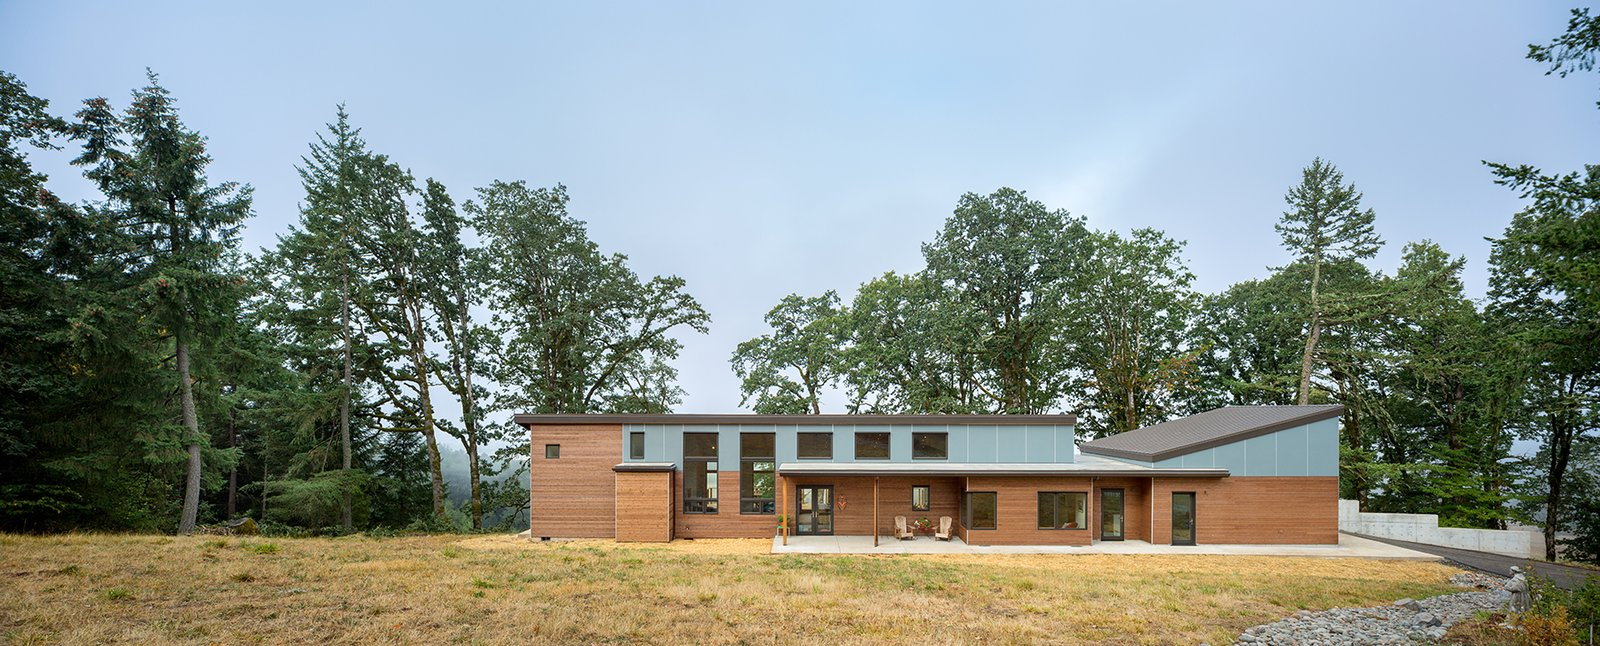 Cedar siding and fiber cement panels, painted a soft blue grey, assures the home blends into the natural landscape. The home's linear plan and shed roofs takes full advantage of the site's views and solar orientation.